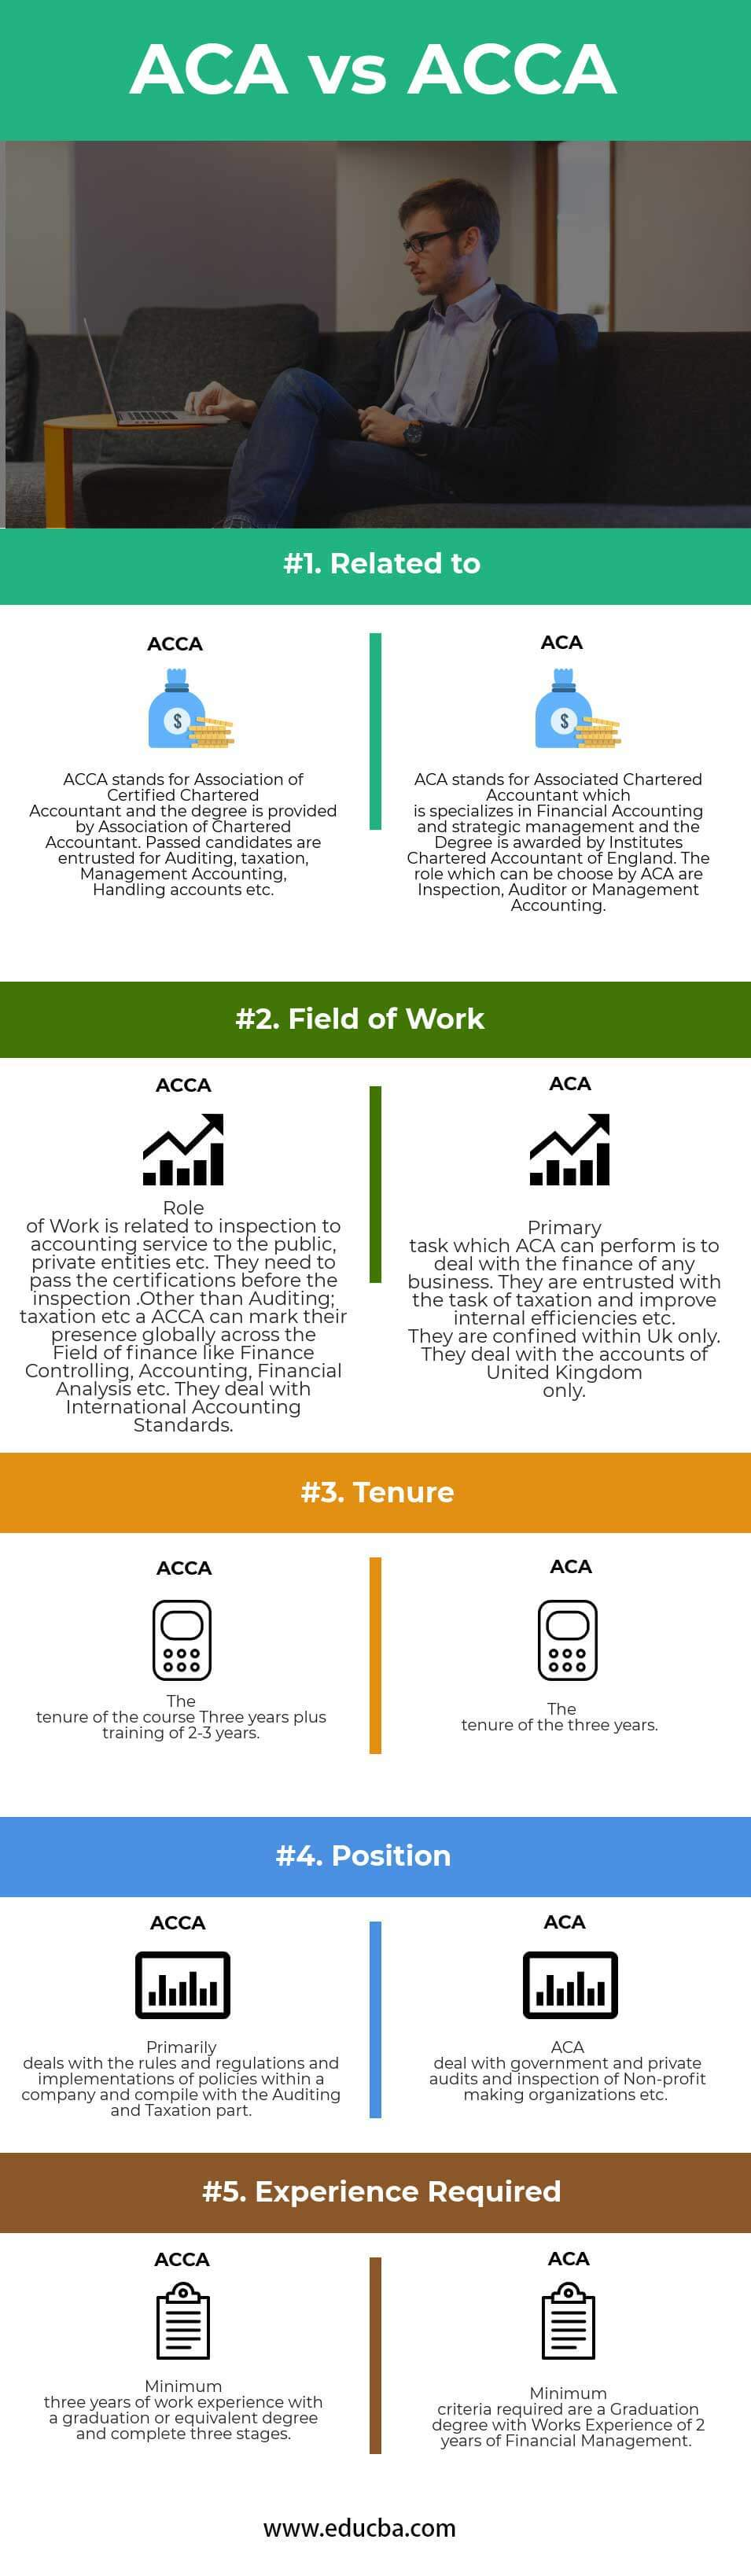 ACA vs ACCA | Top 5 Useful Differences (With Infographics)